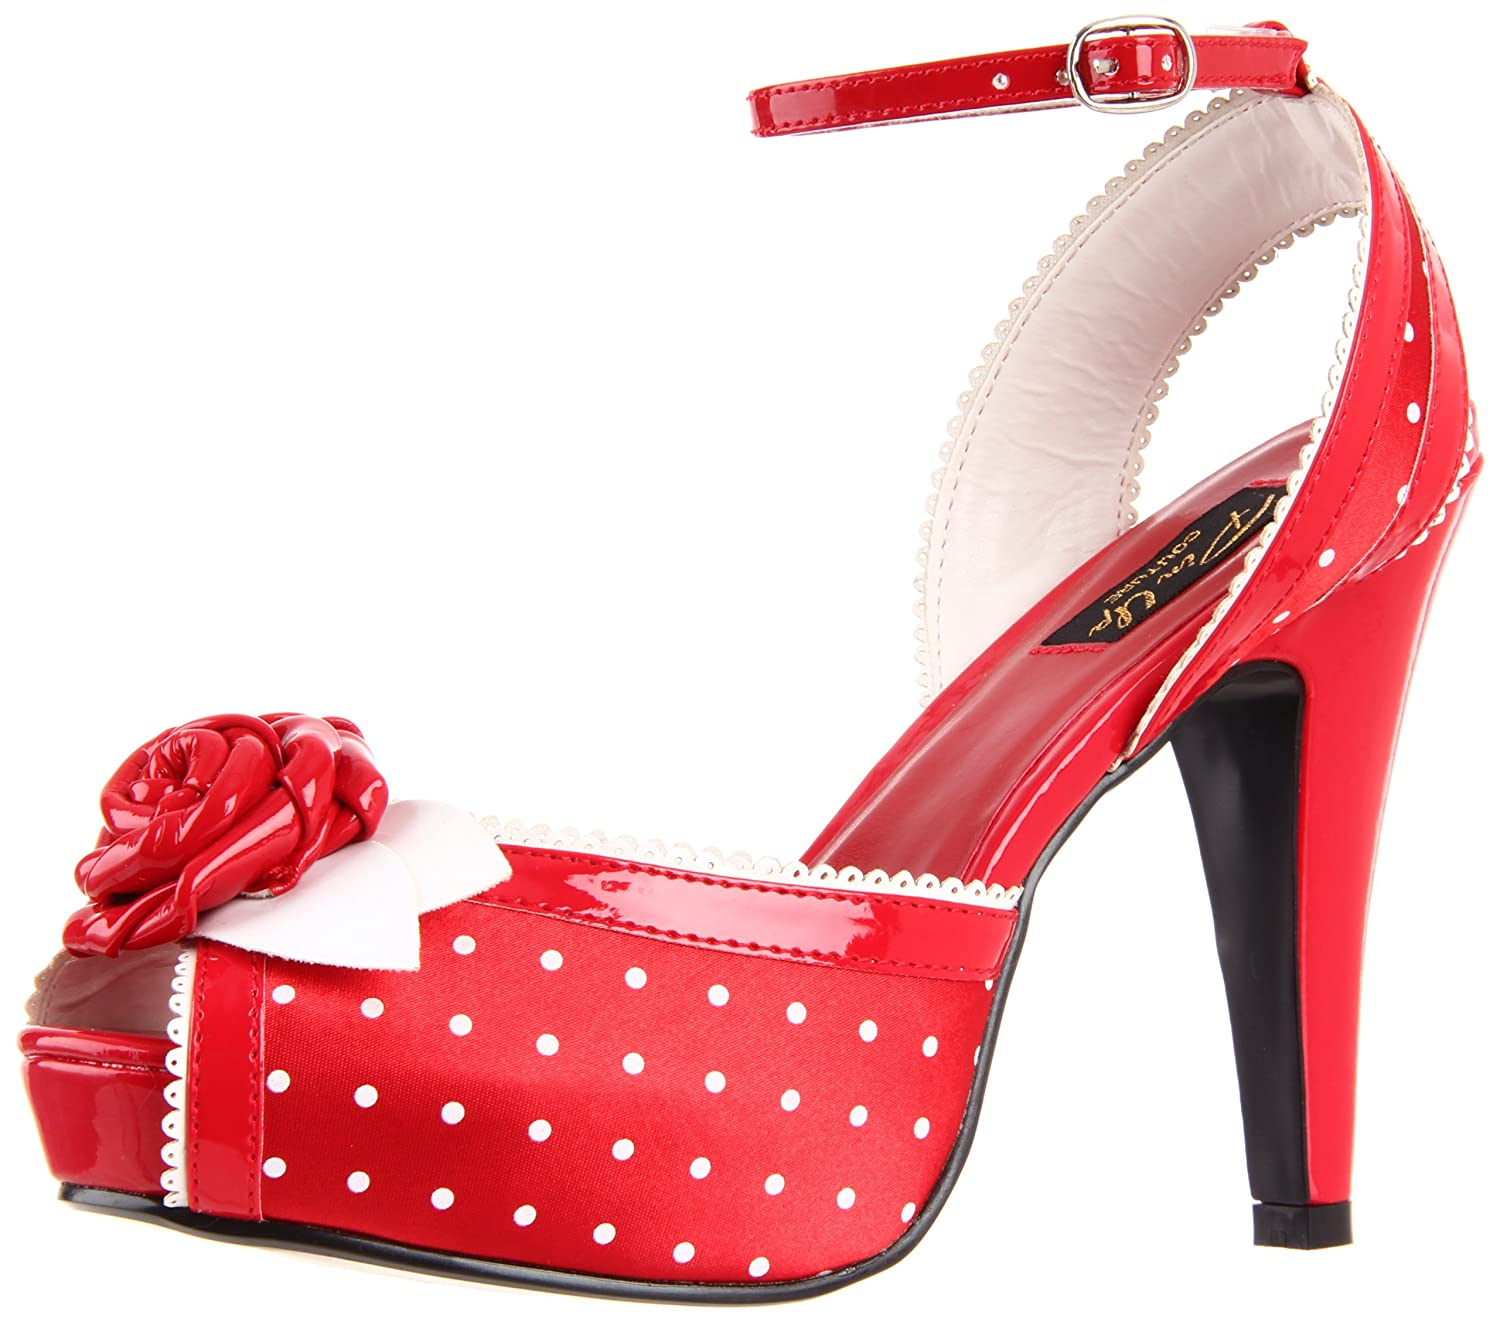 Pin Up Pin Couture BETTIE-06 - Red Up Satin (Polka Dots Print) UK 2 (EU 35) - 4b5f754 - boatplans.space